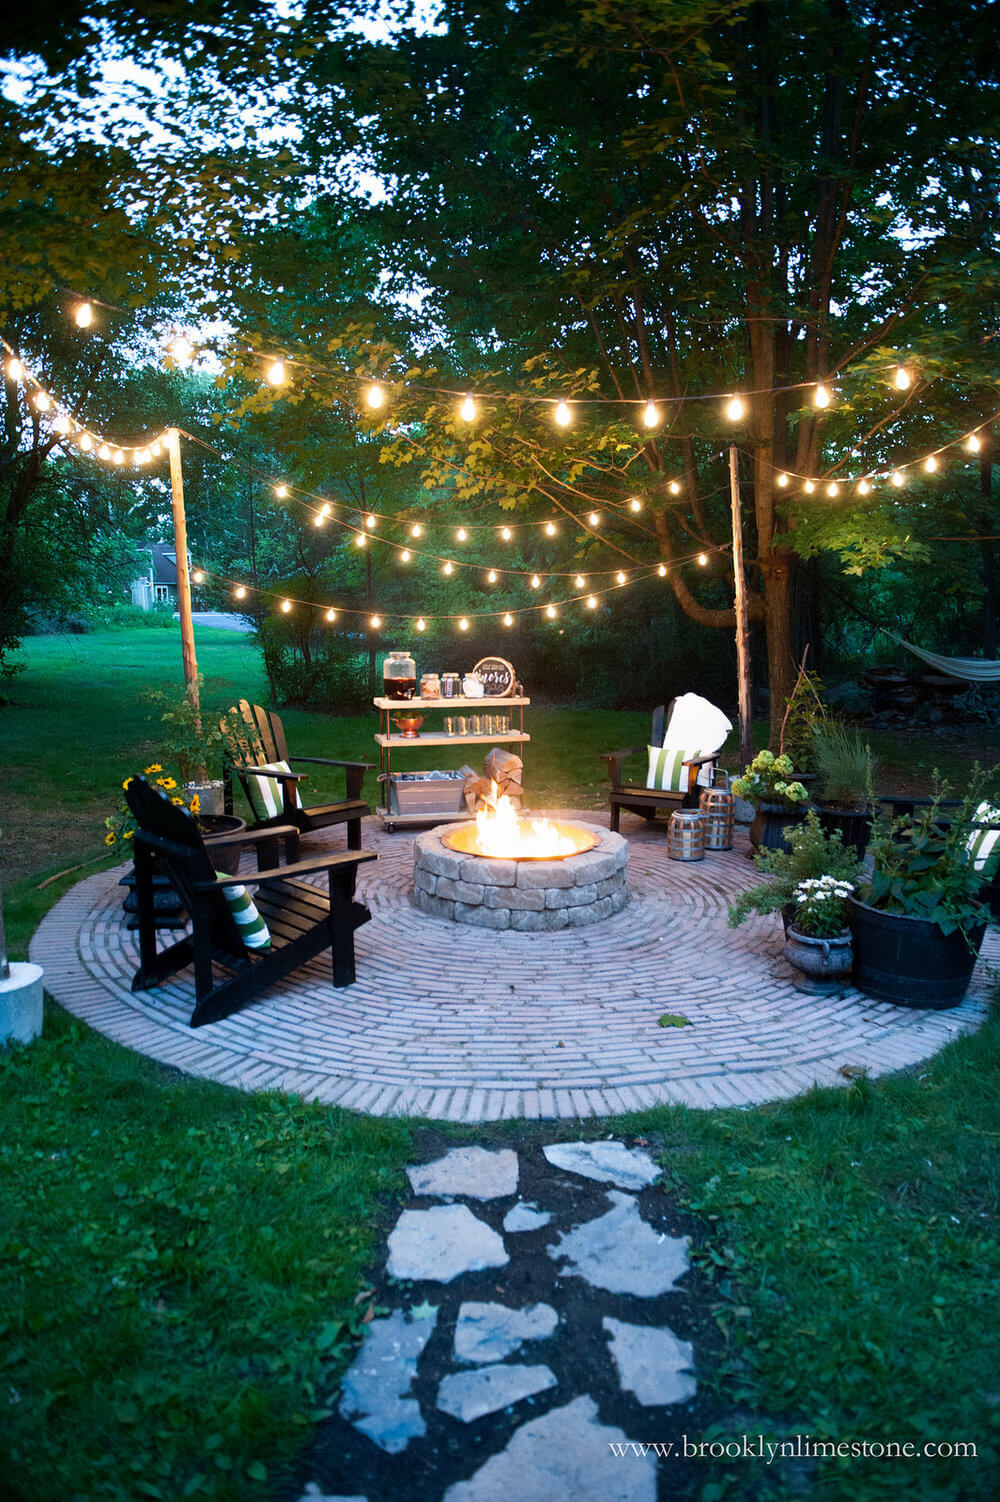 27 Best Backyard Lighting Ideas And Designs For 2019 within 14 Smart Initiatives of How to Improve Lighting Ideas For Backyard Party